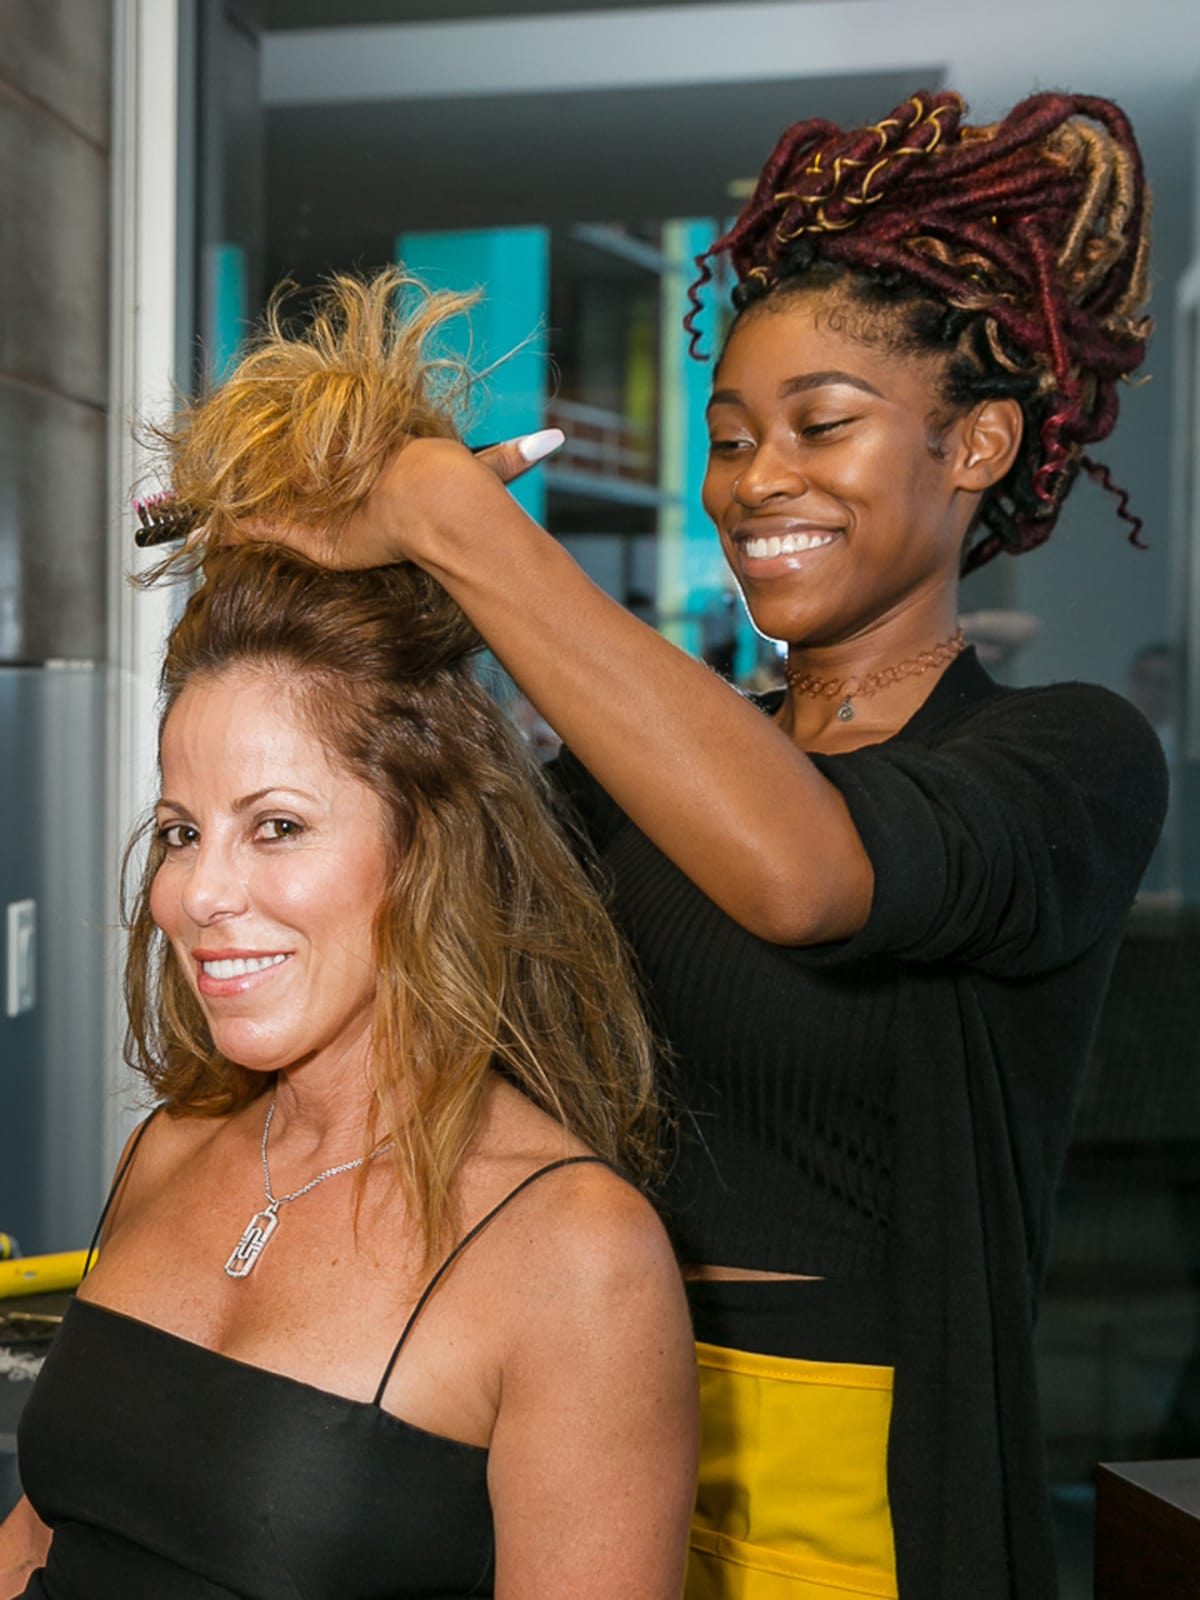 CultureMap Country Club Social, Christine Winston having hair done, Davijah Brown, Stylist Drybar